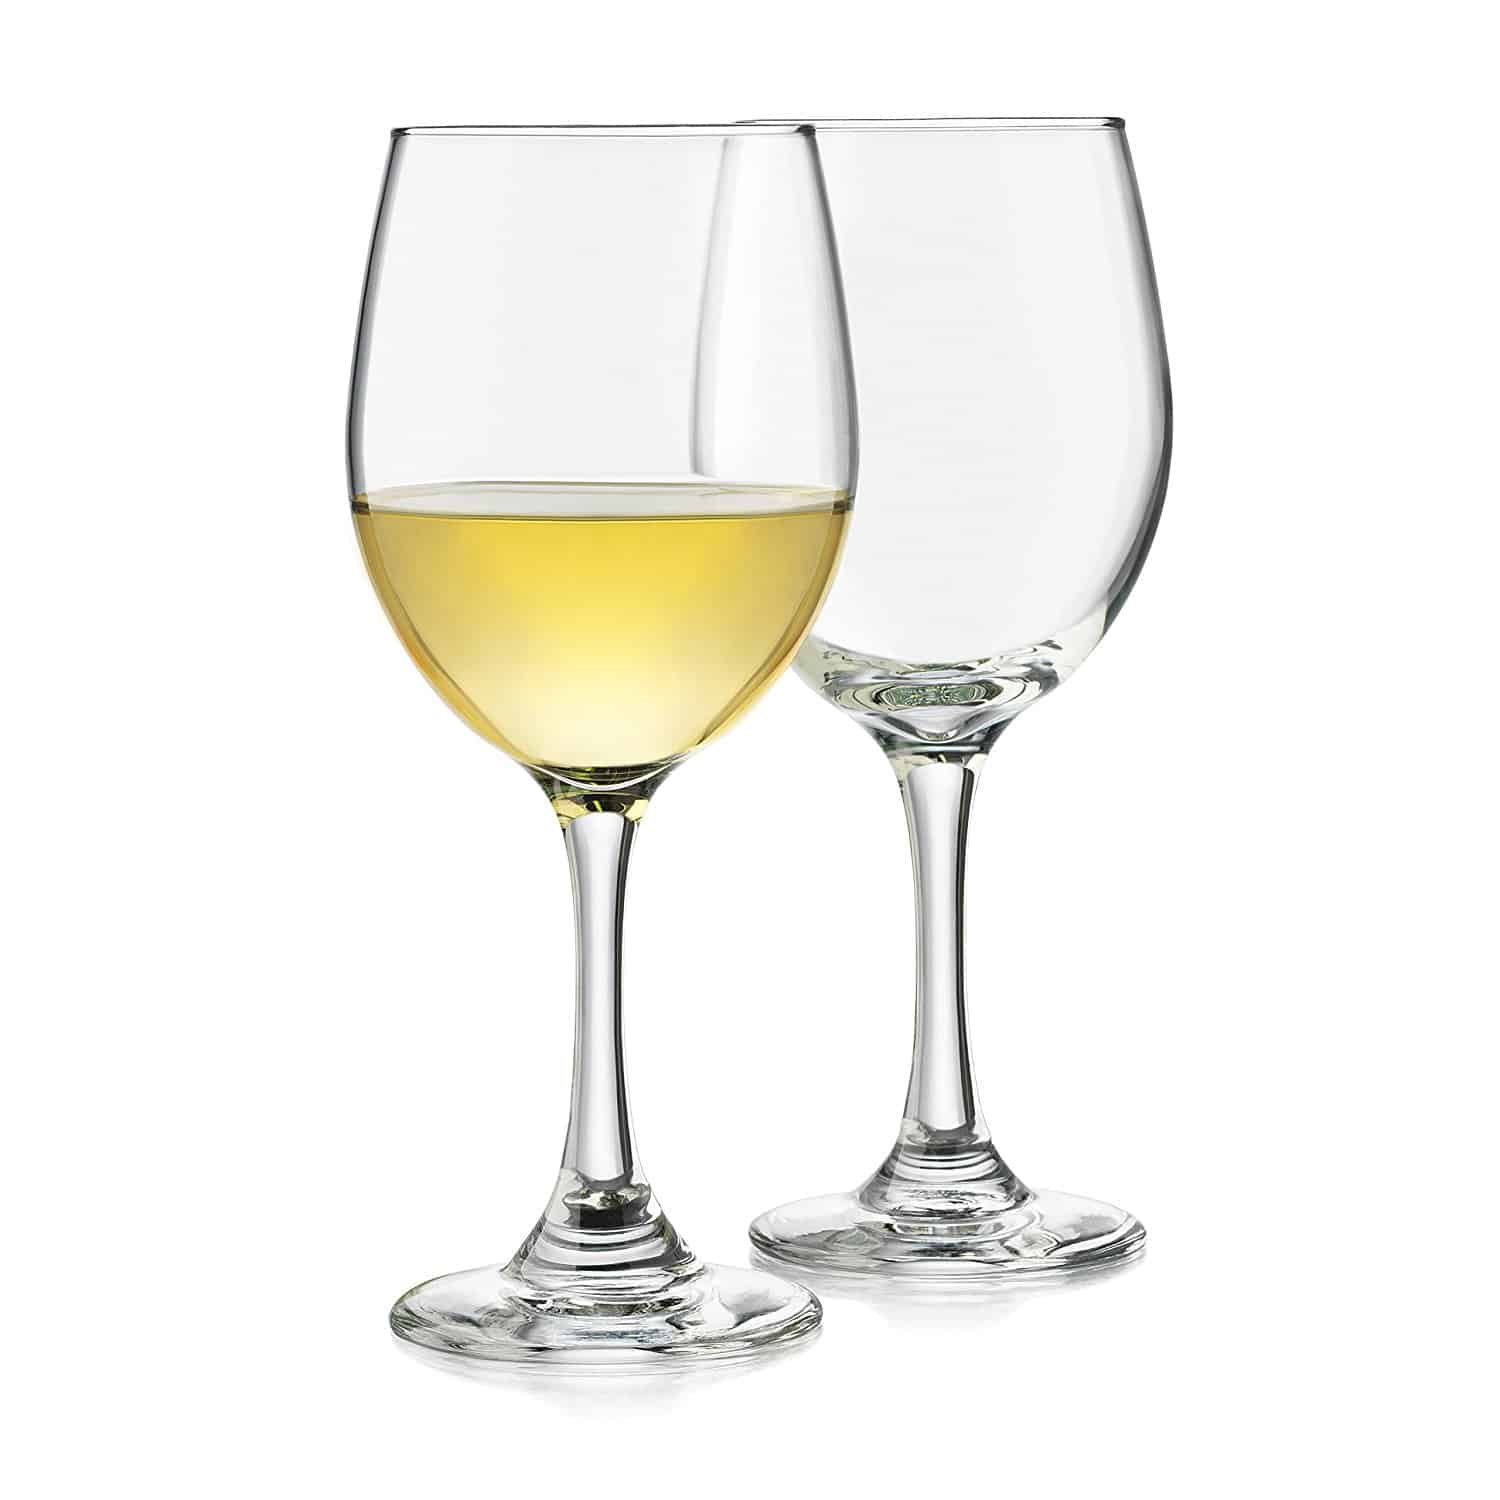 White wine glass with timeless design and dishwasher safe.